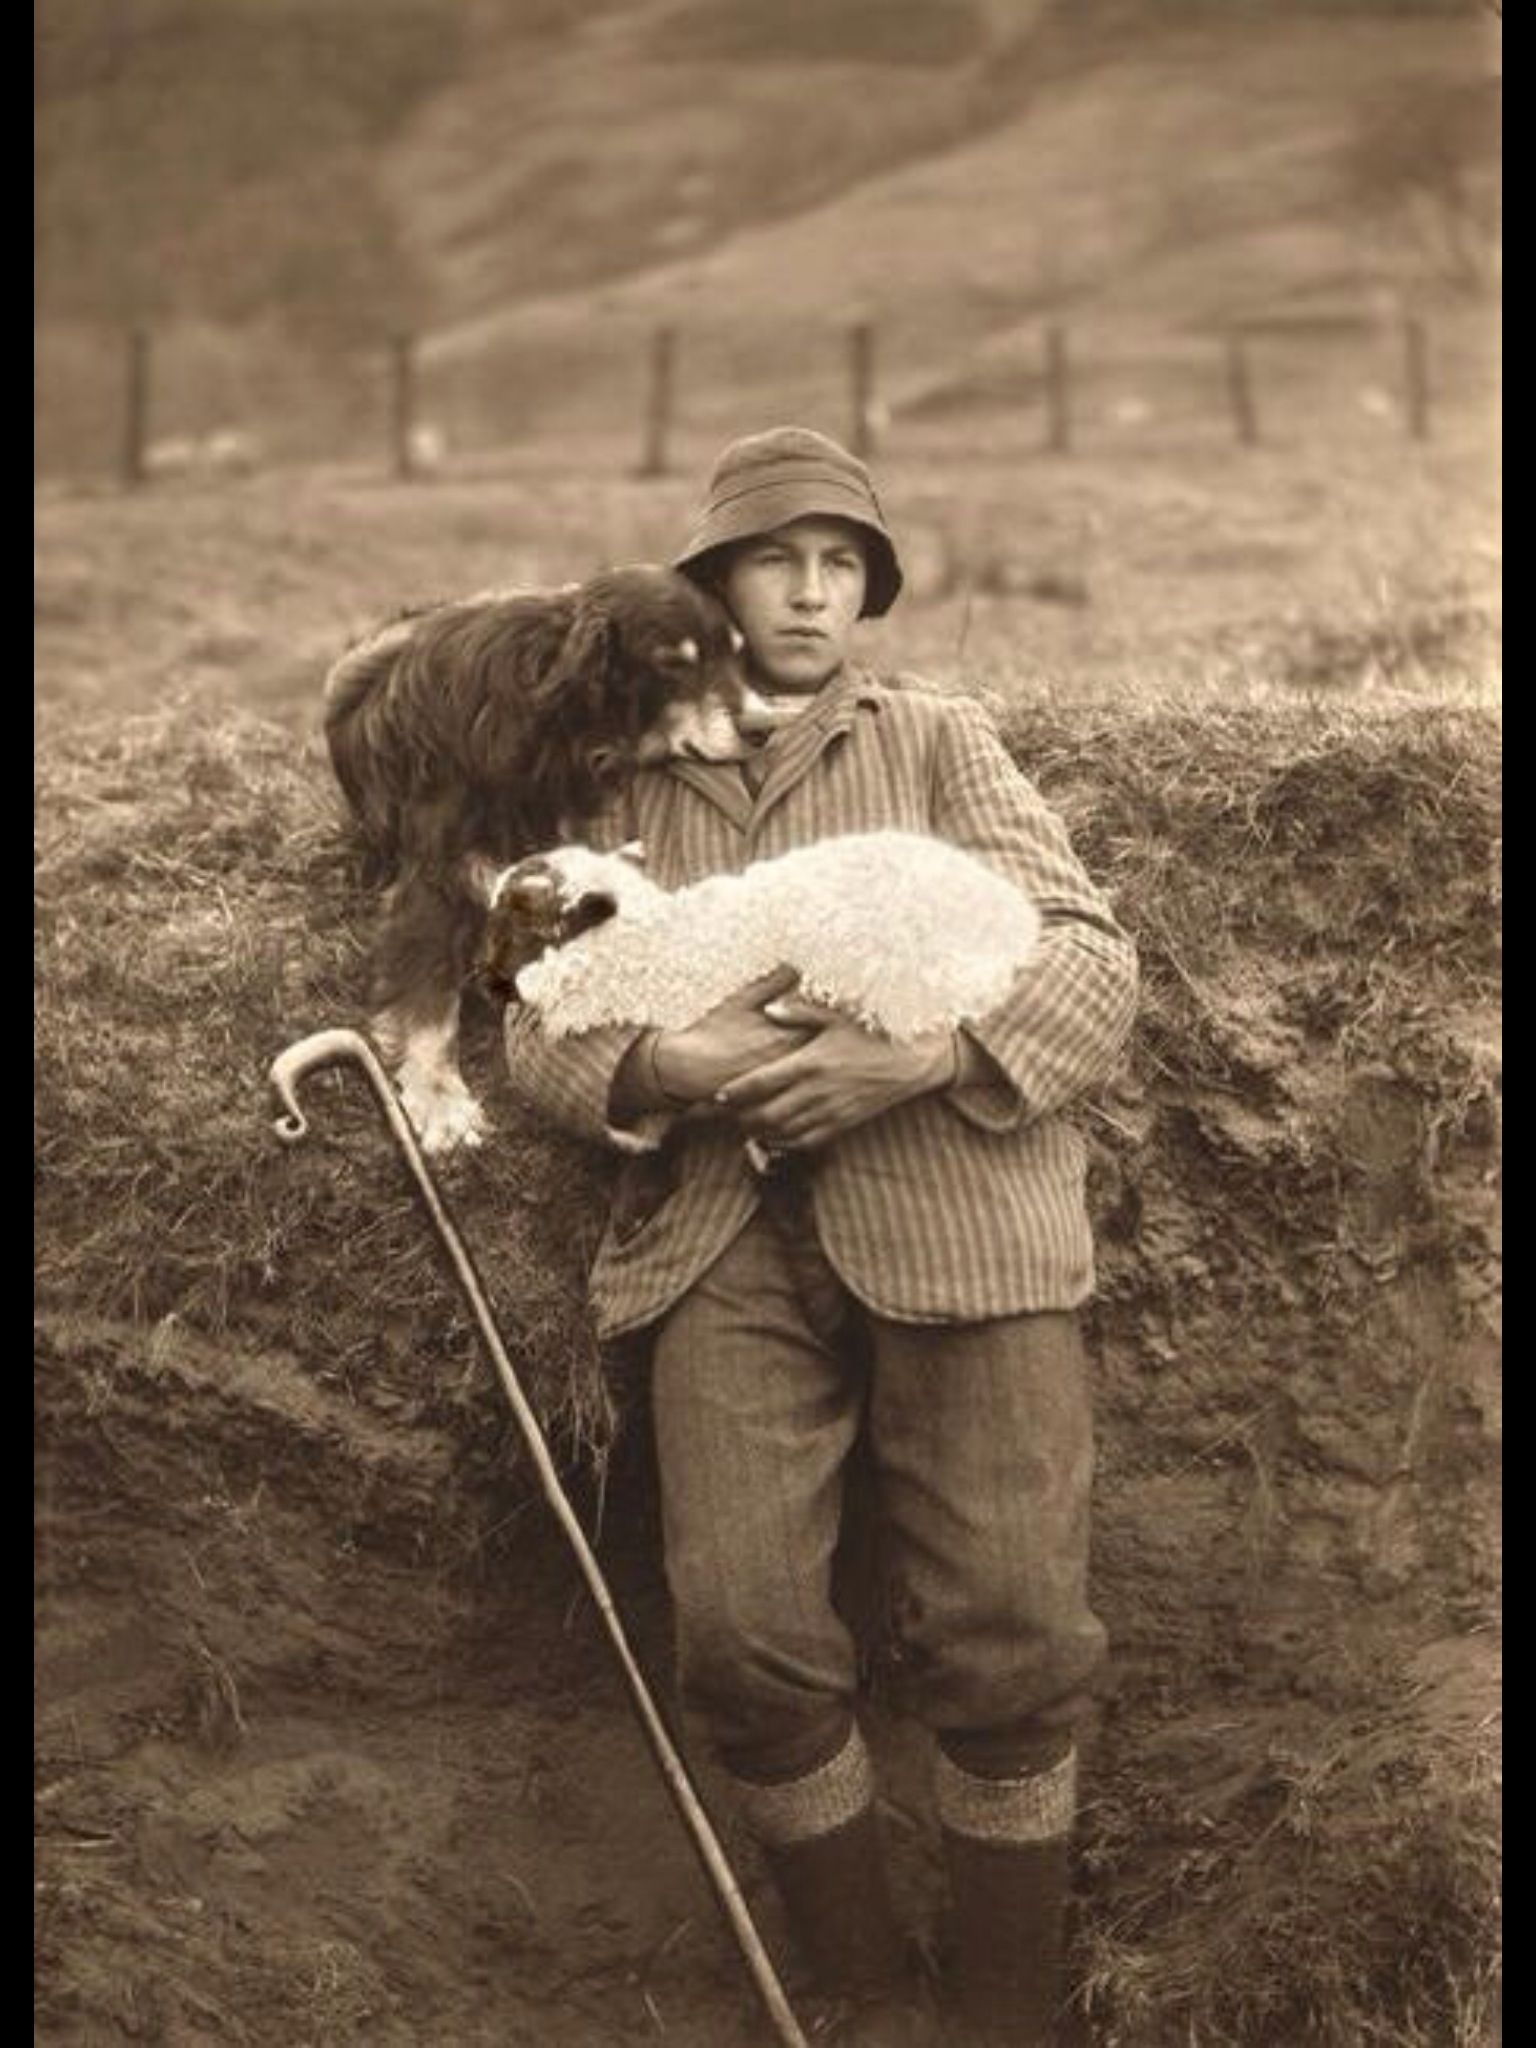 Heartwarming Vintage Photo Of A Shepherd Holding A Lamb -8311